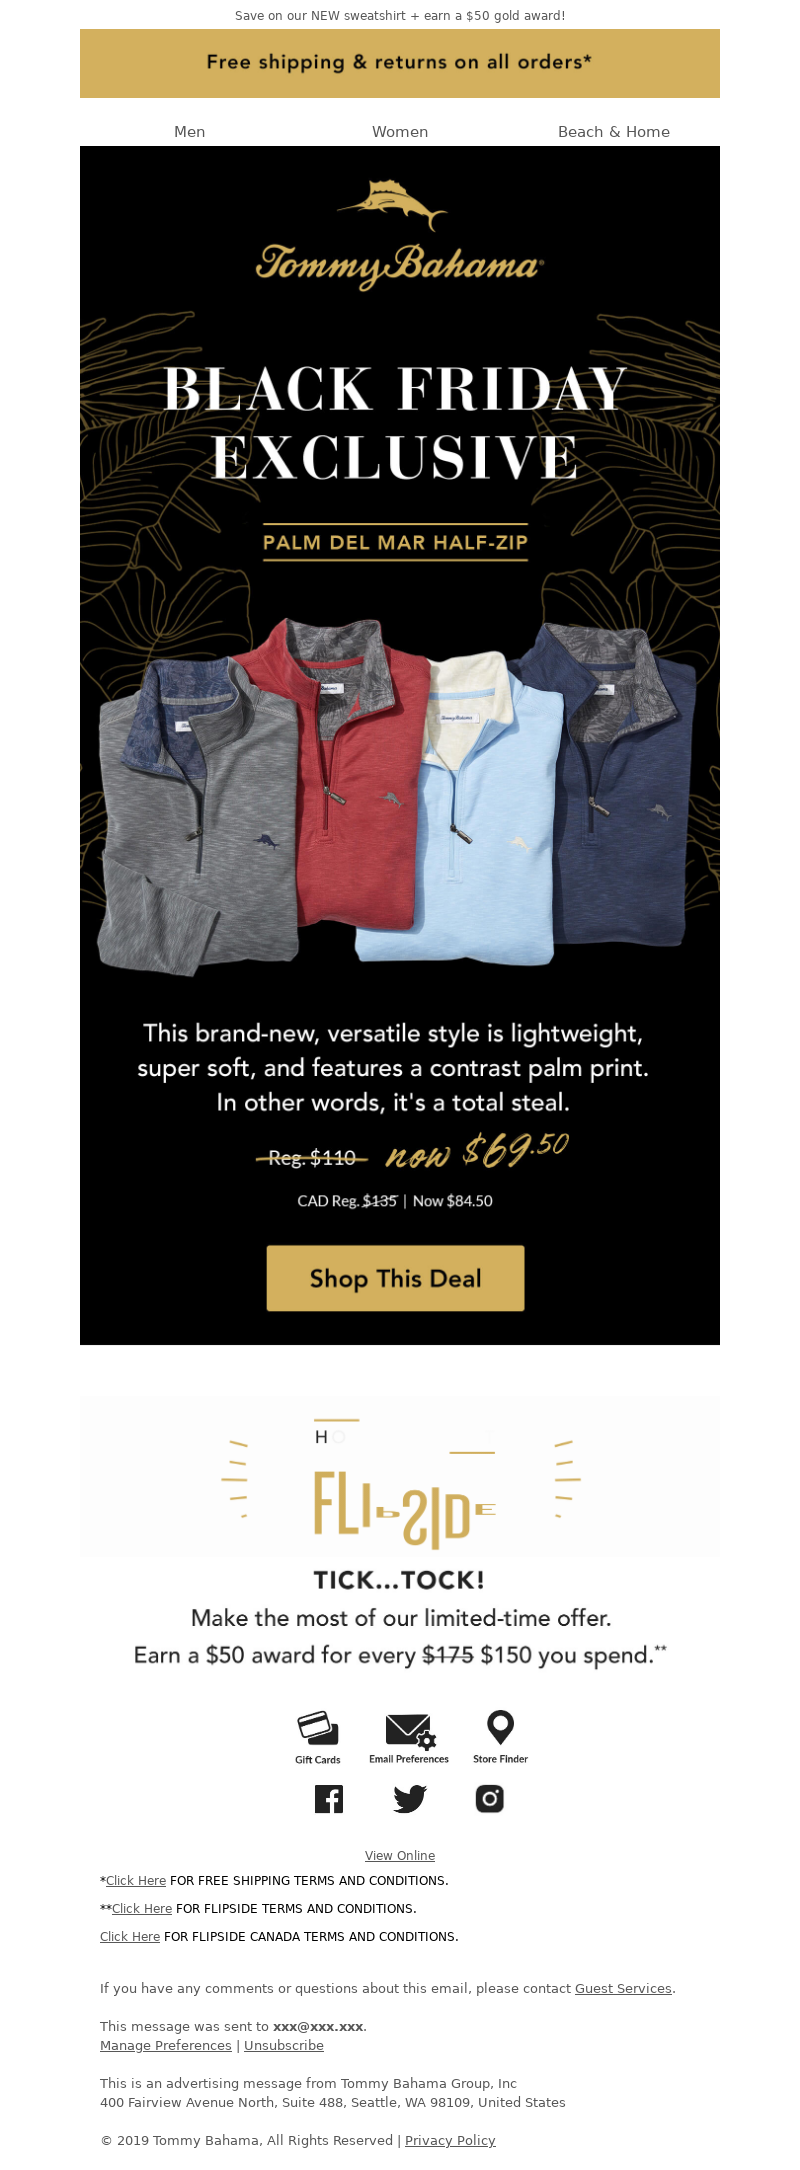 Tommy Bahama Email Marketing Examples